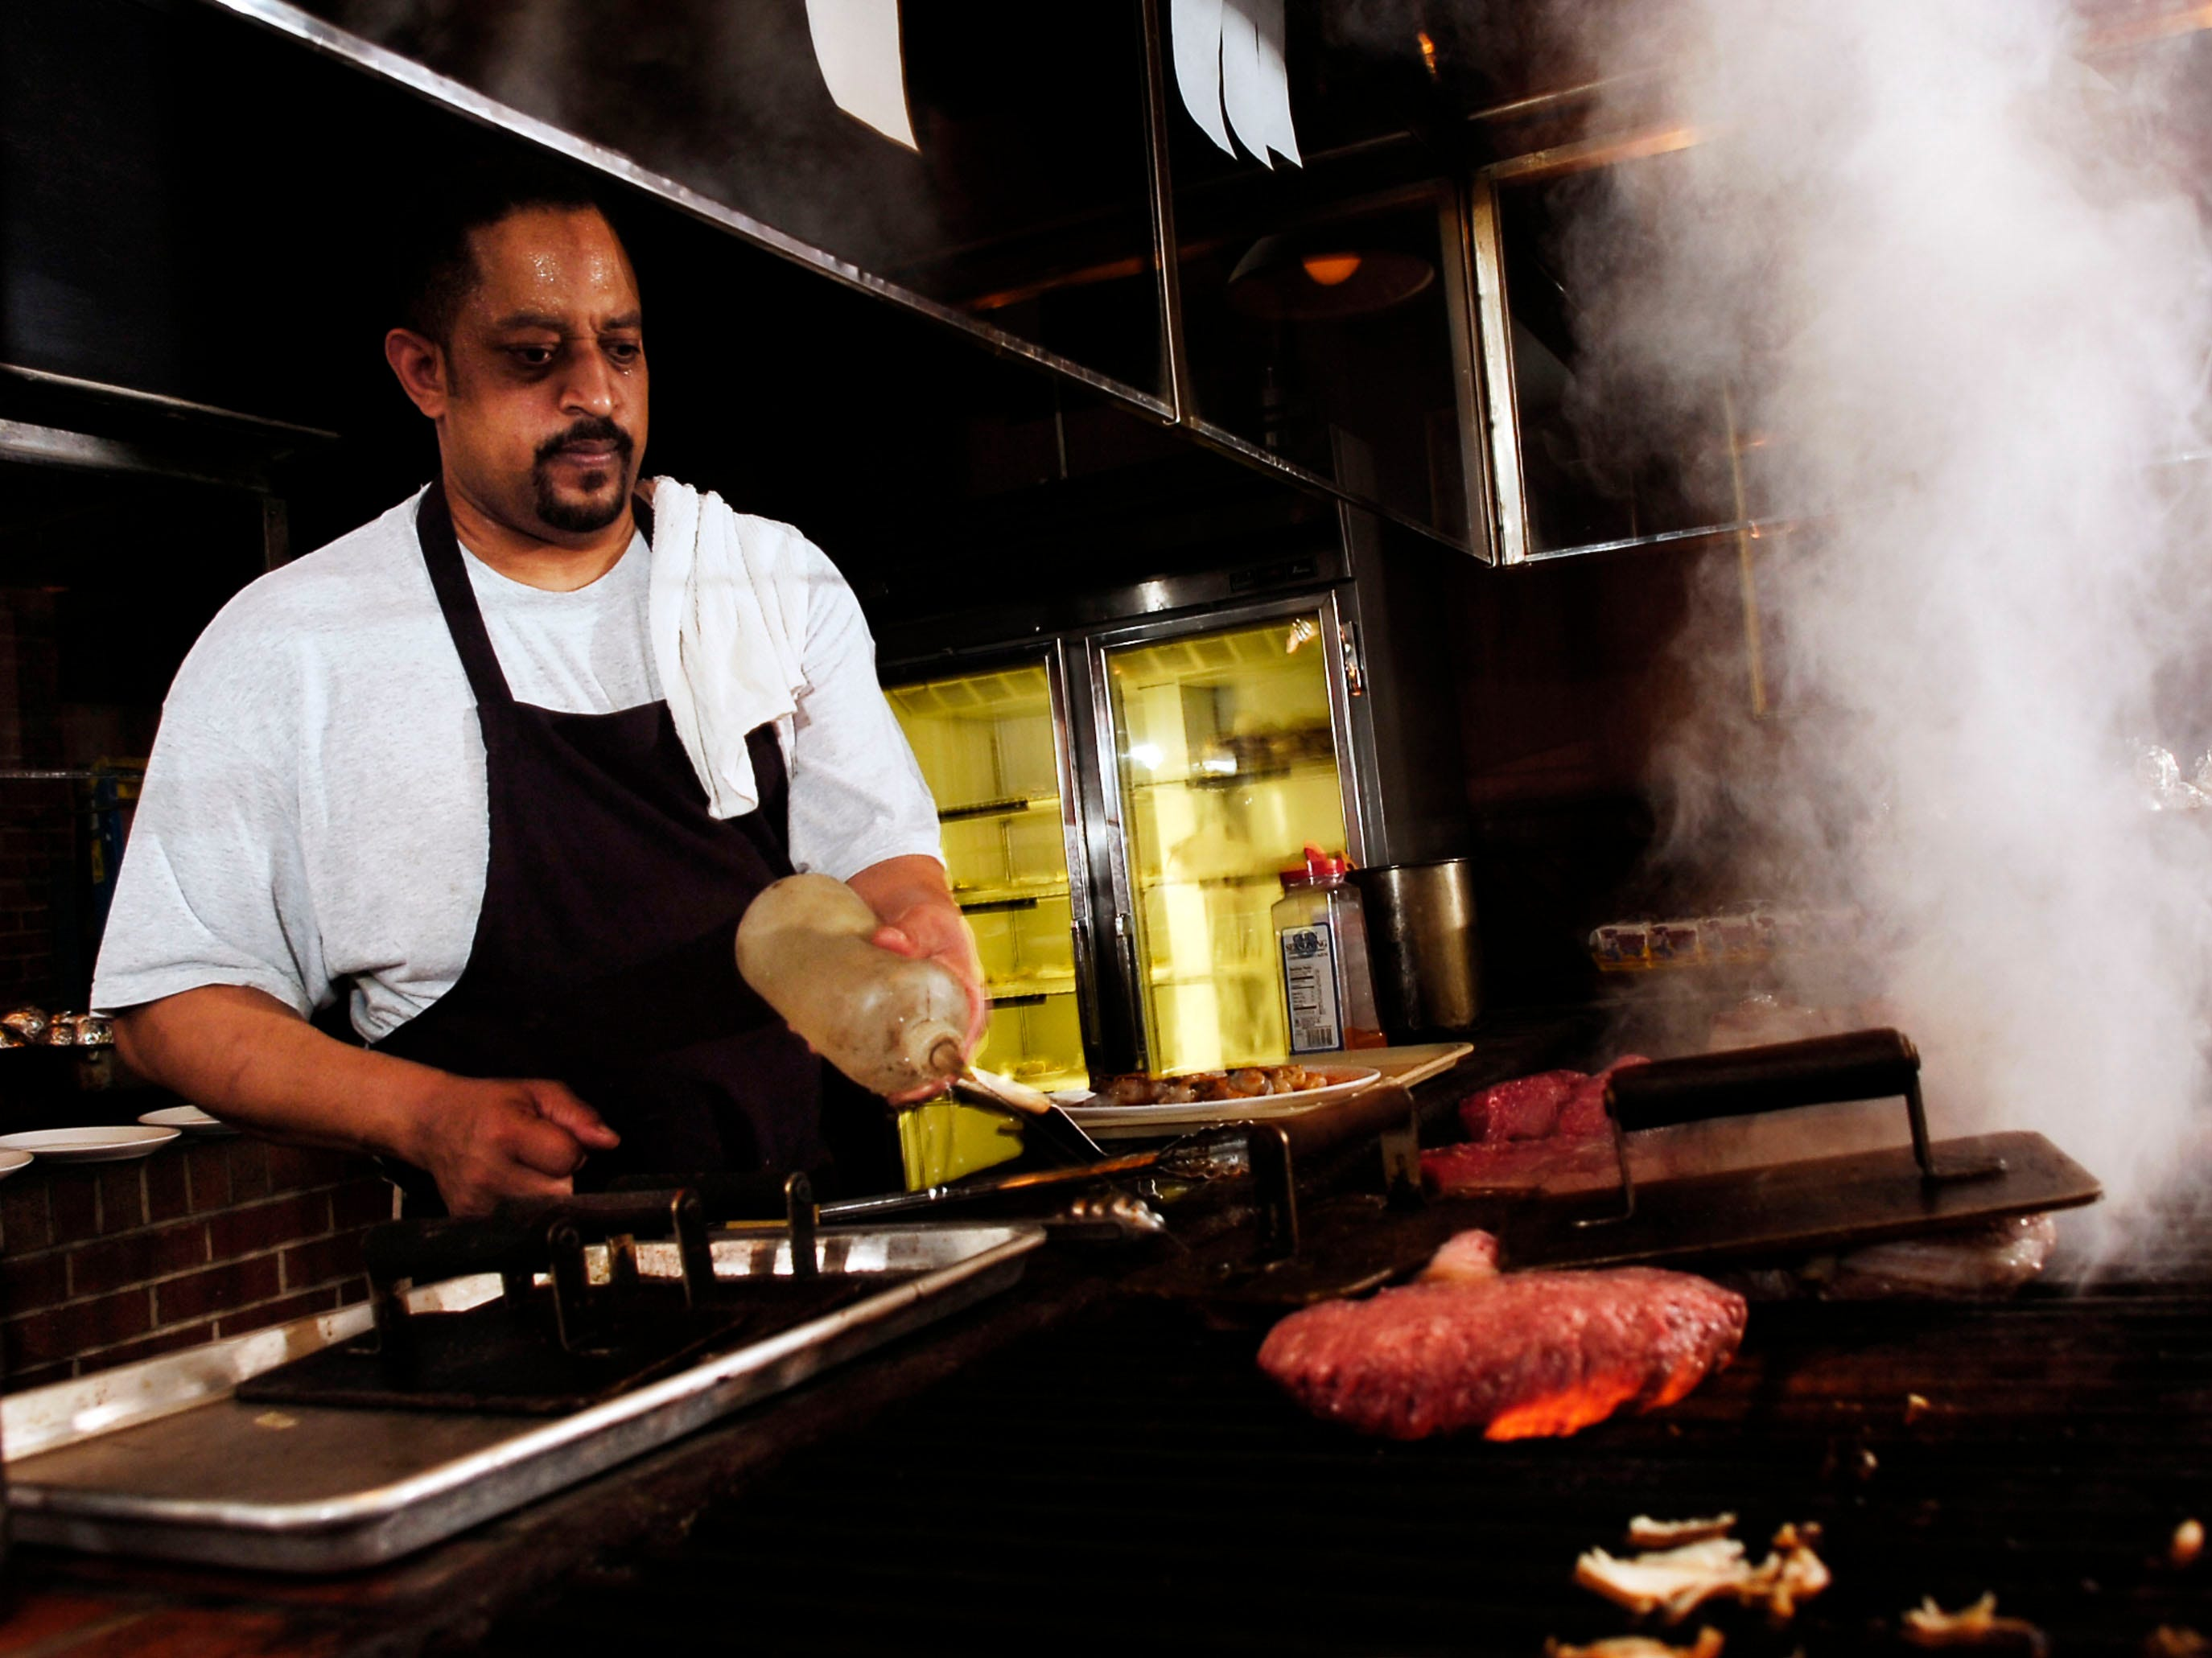 Gary Powell at the grill in at the Butcher Shop Steakhouse in World's Fair Park in 2007.